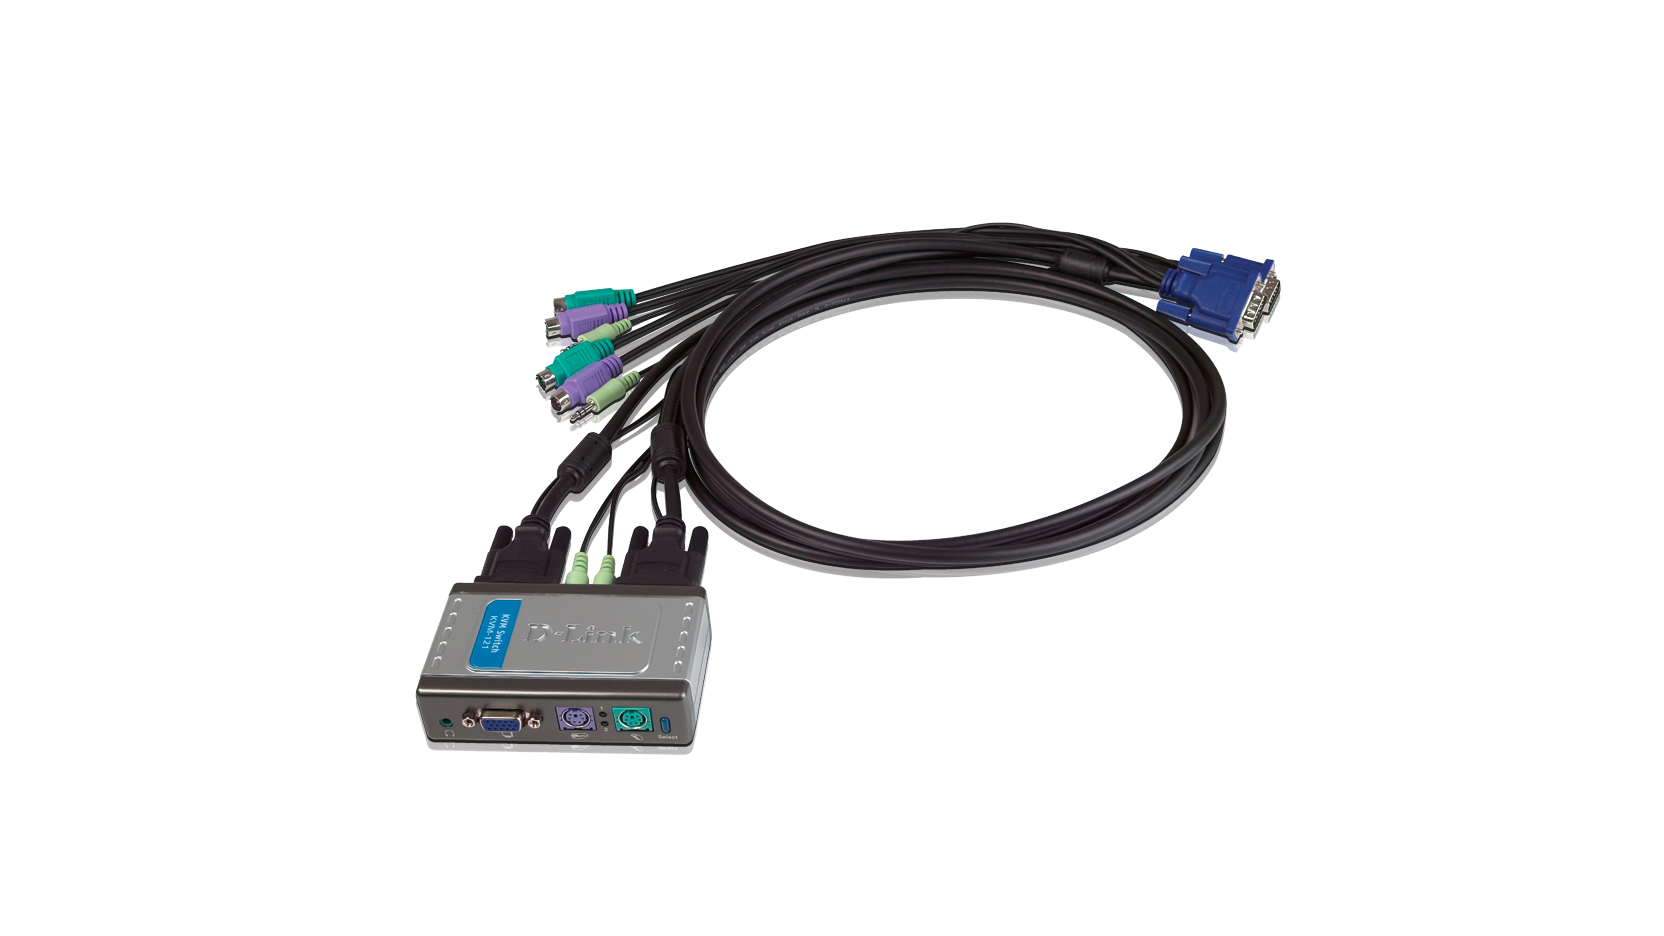 KVM121 2Port KVM Switch with Audio Support Philippines